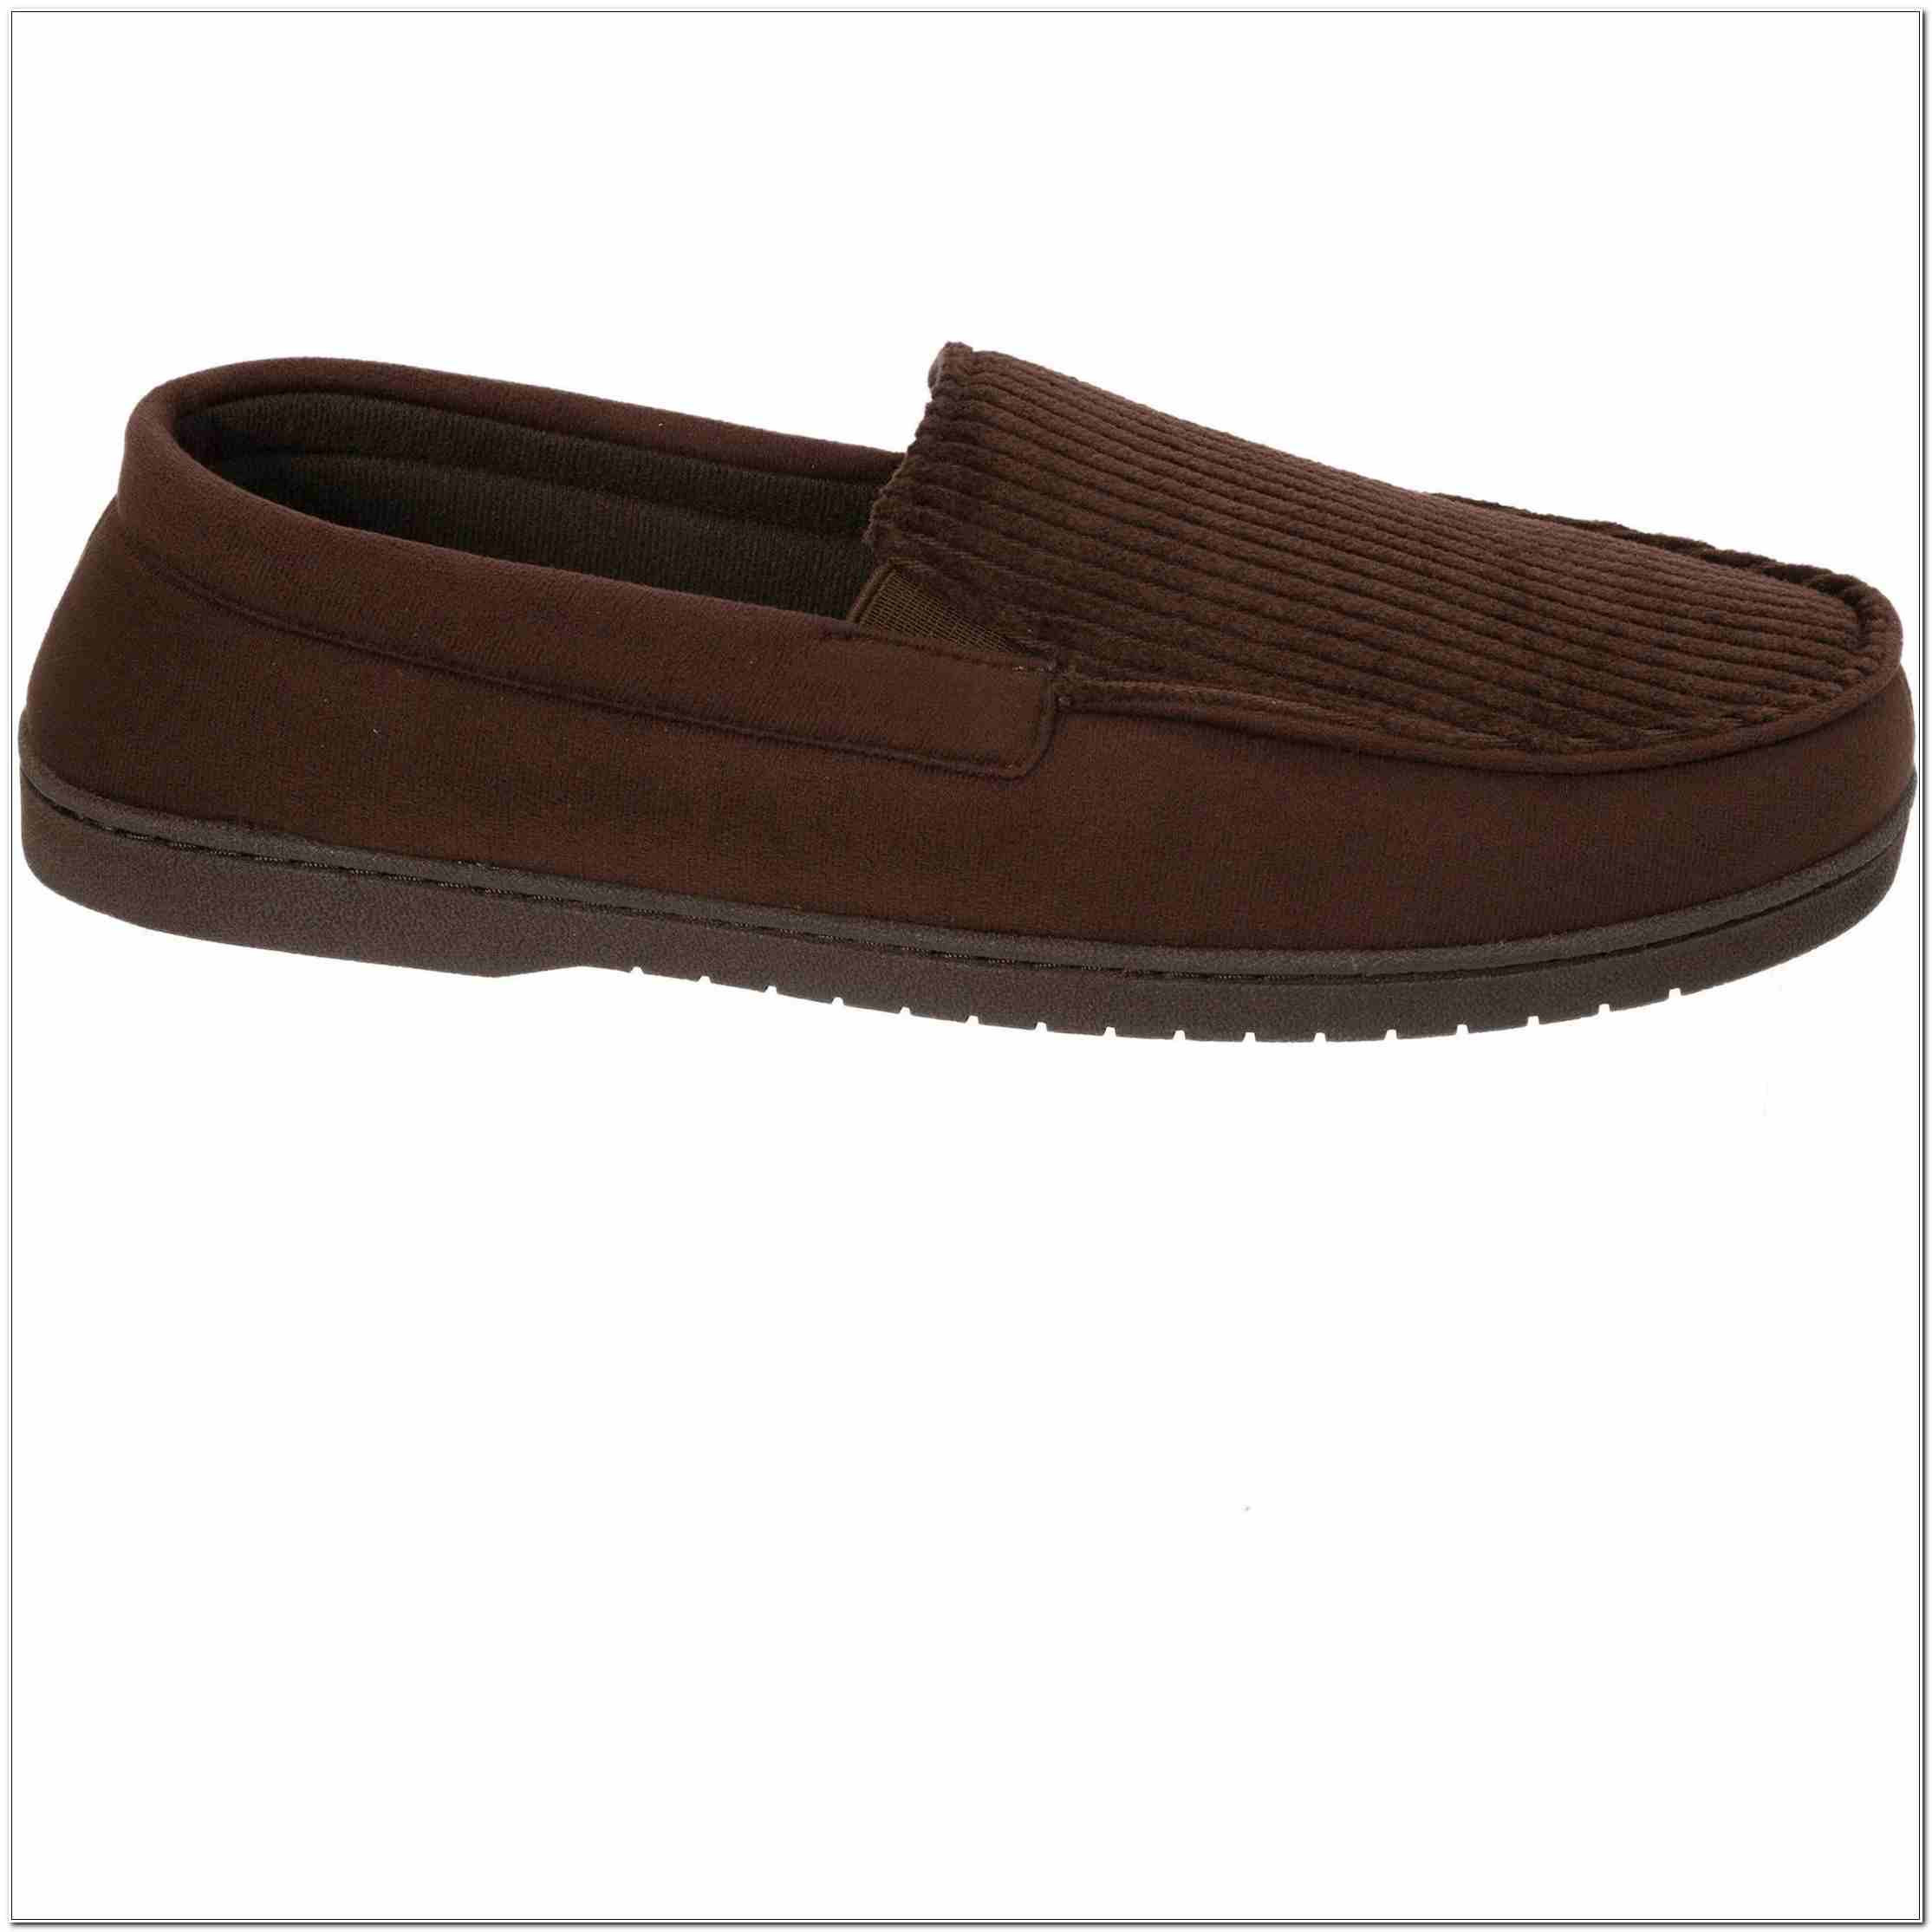 35 luxury bedroom slippers mens  home family style and